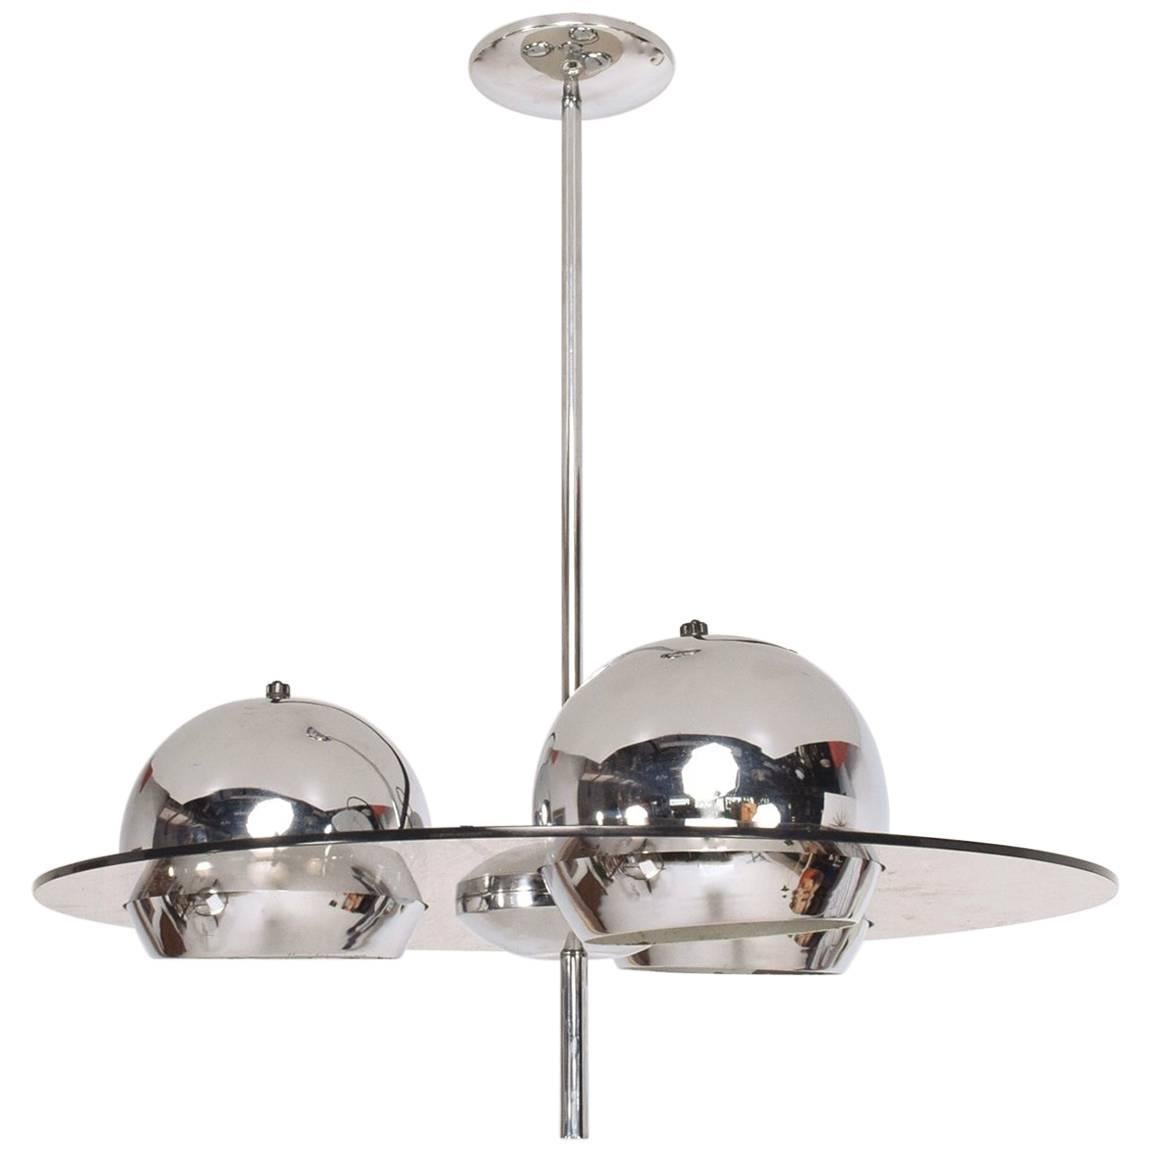 Mid Century Modern Acrylic And Chrome Pendant Light For Sale